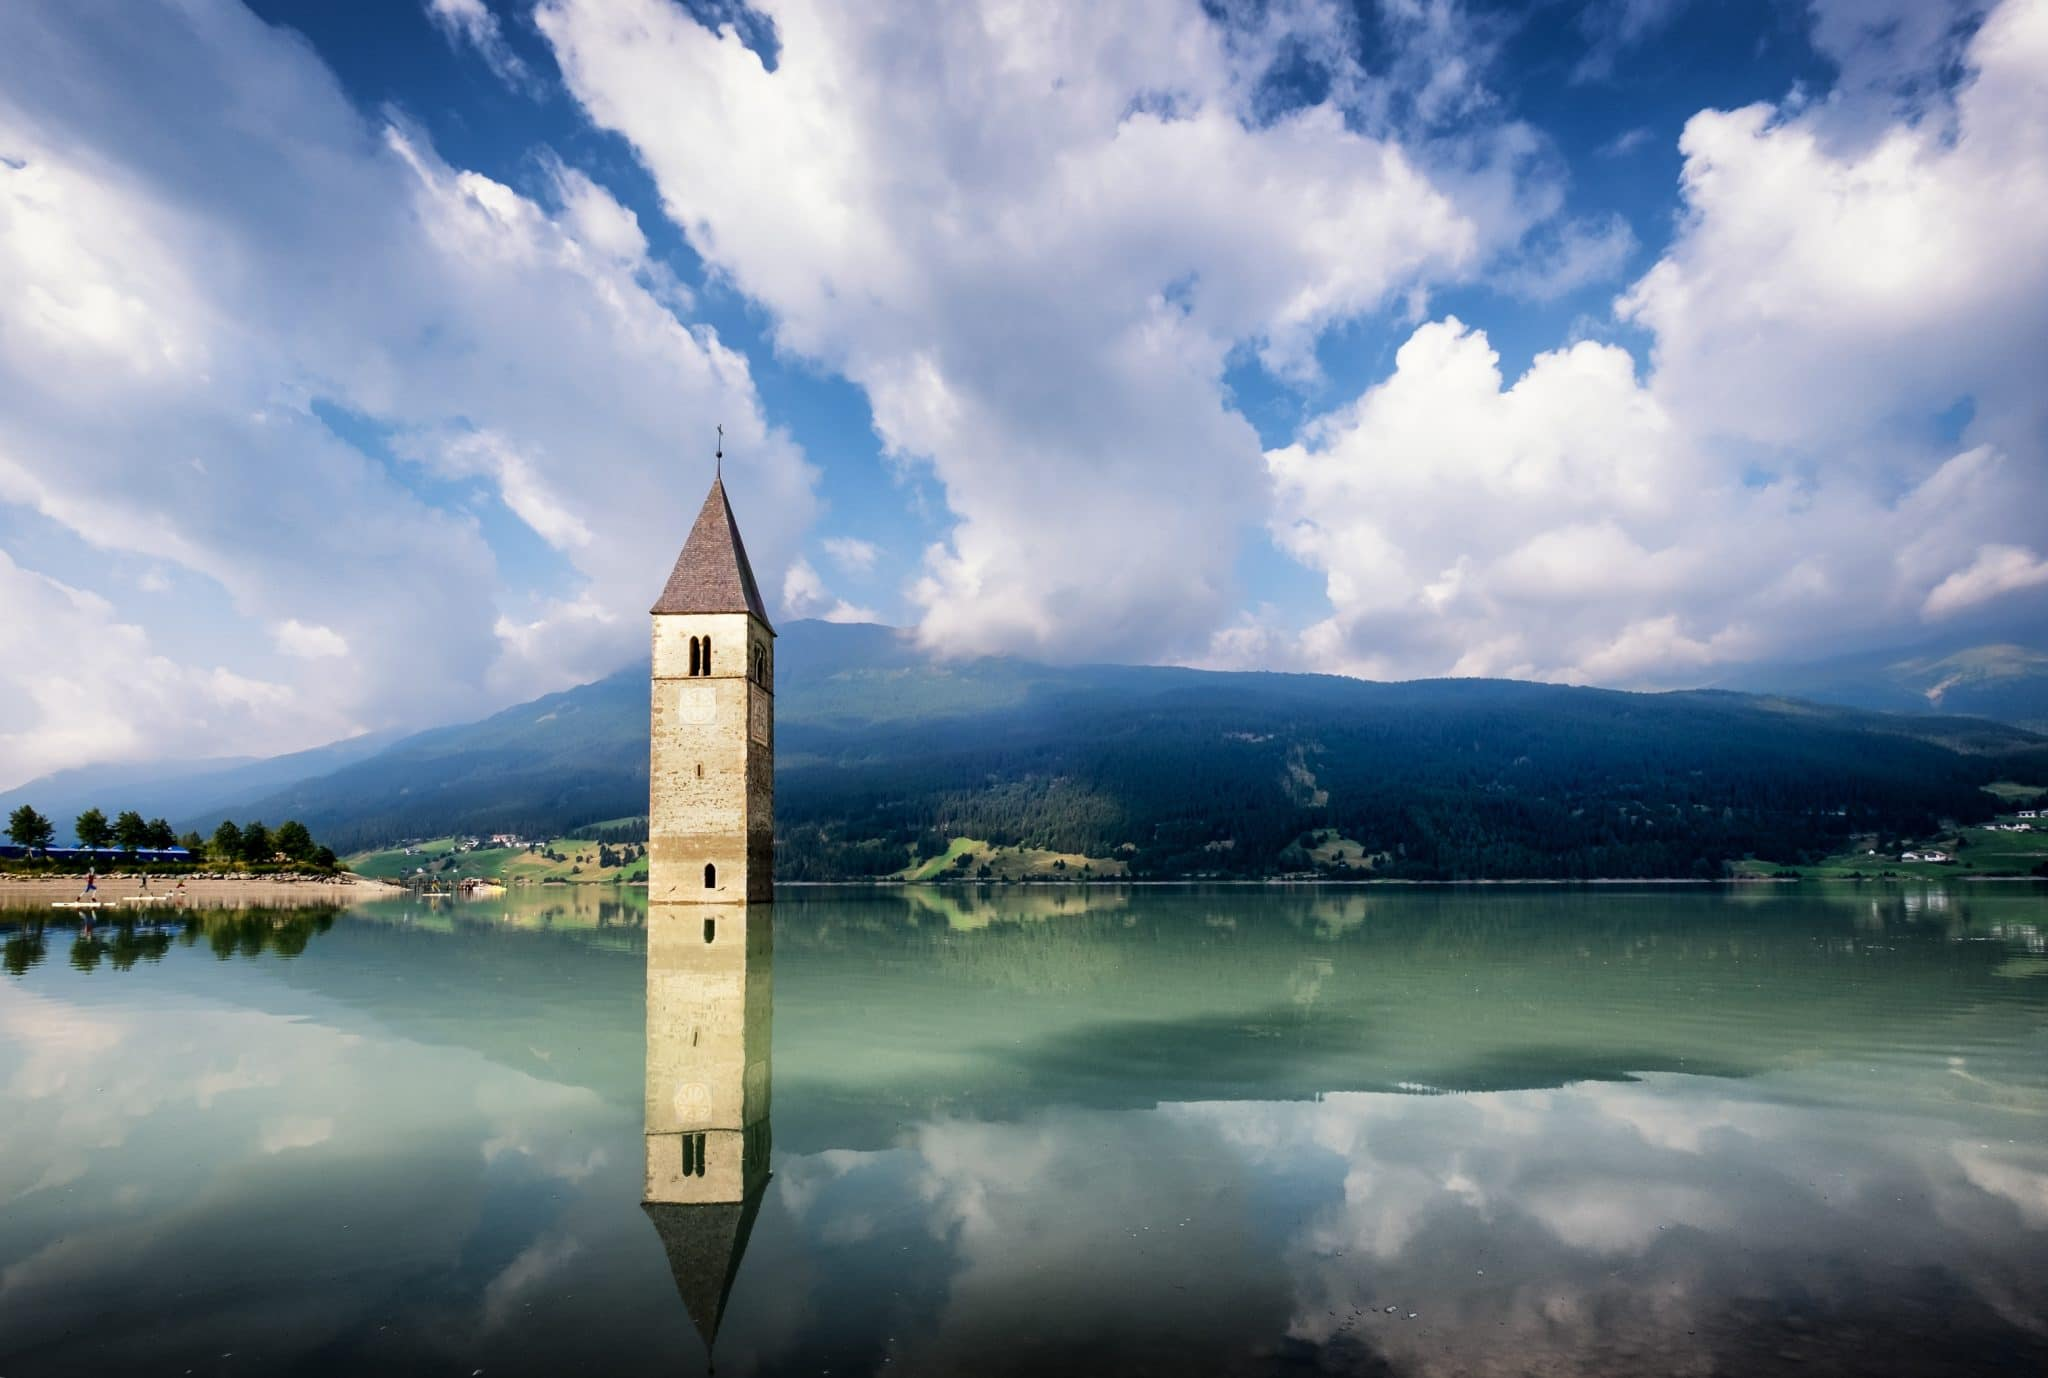 famous historic bell tower at the reschenpass - italy